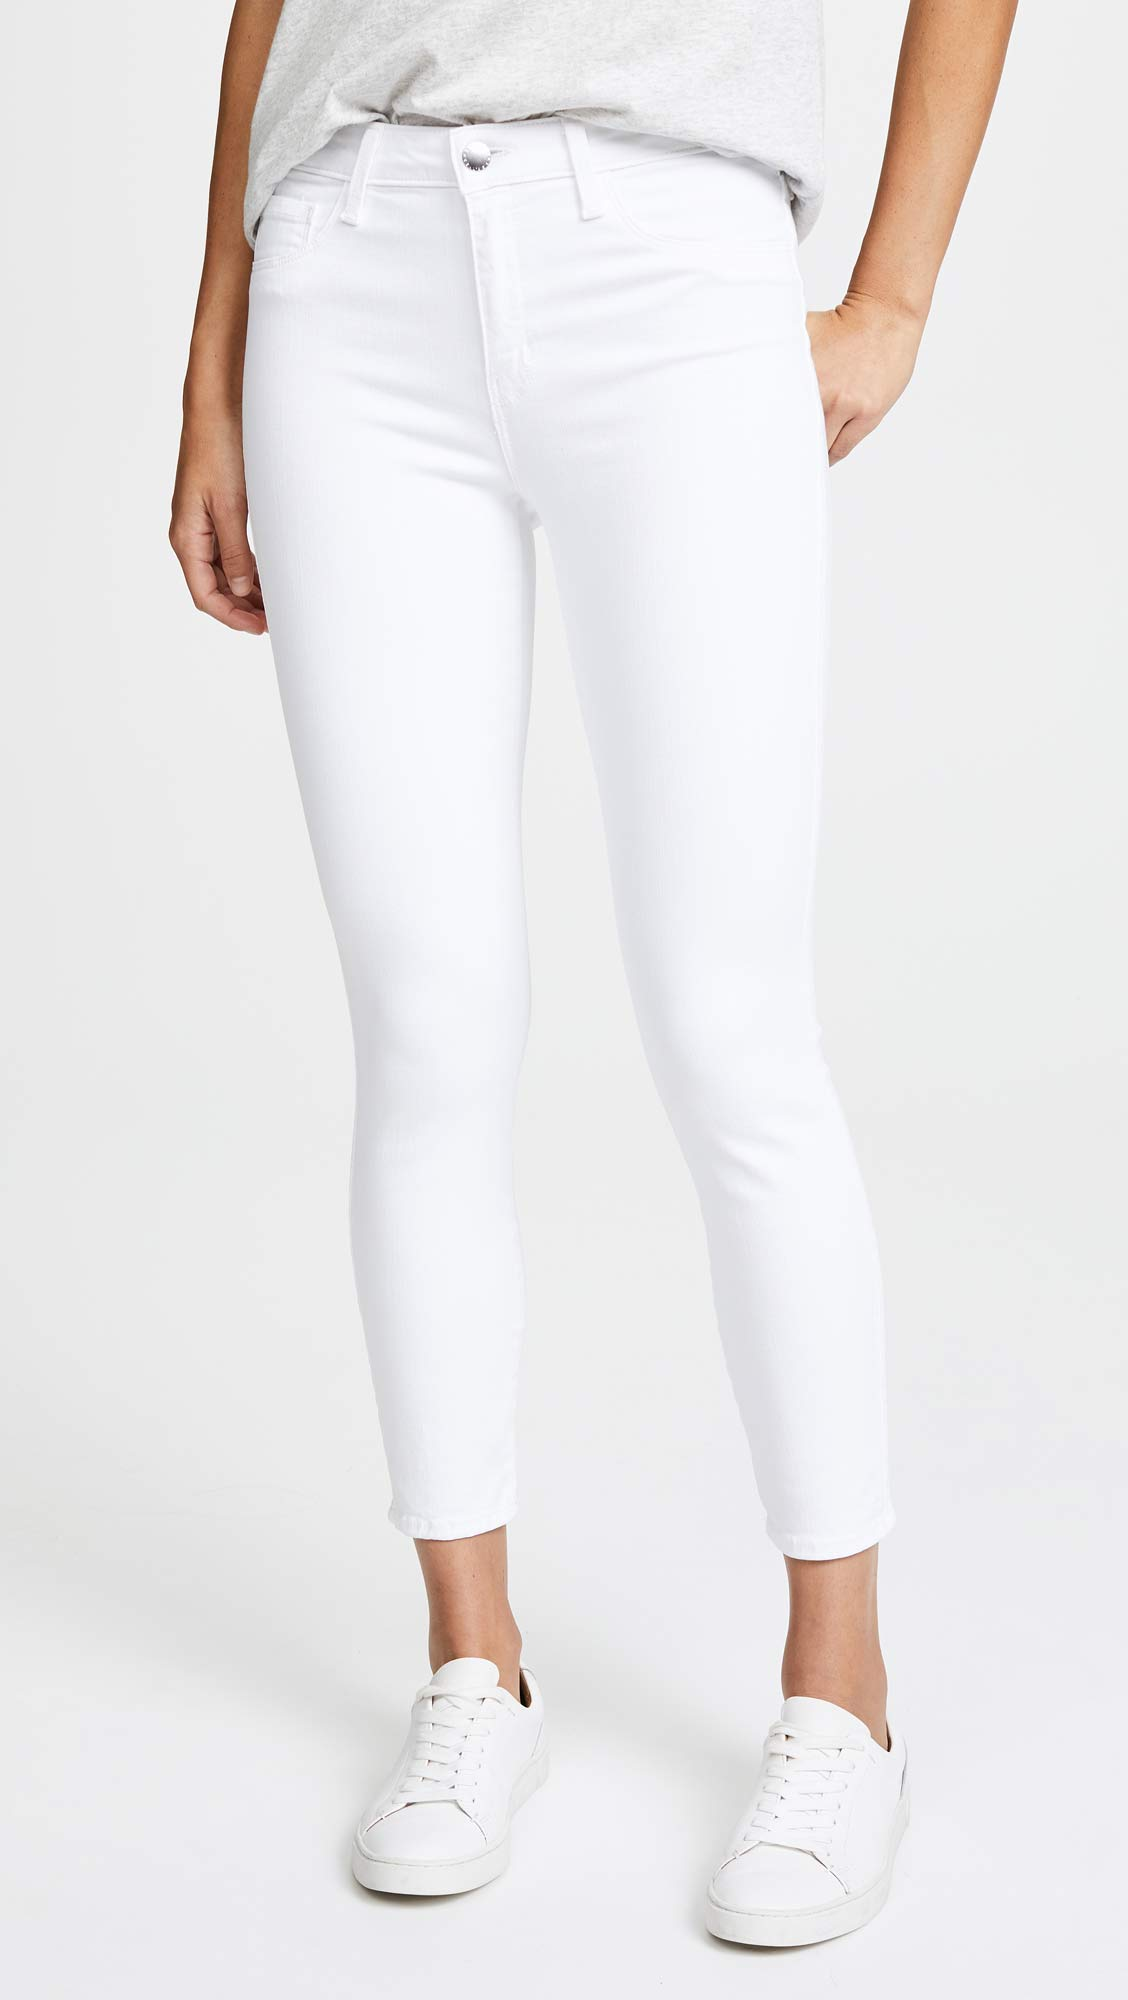 Are These The Perfect White Skinny Jeans For Summer?